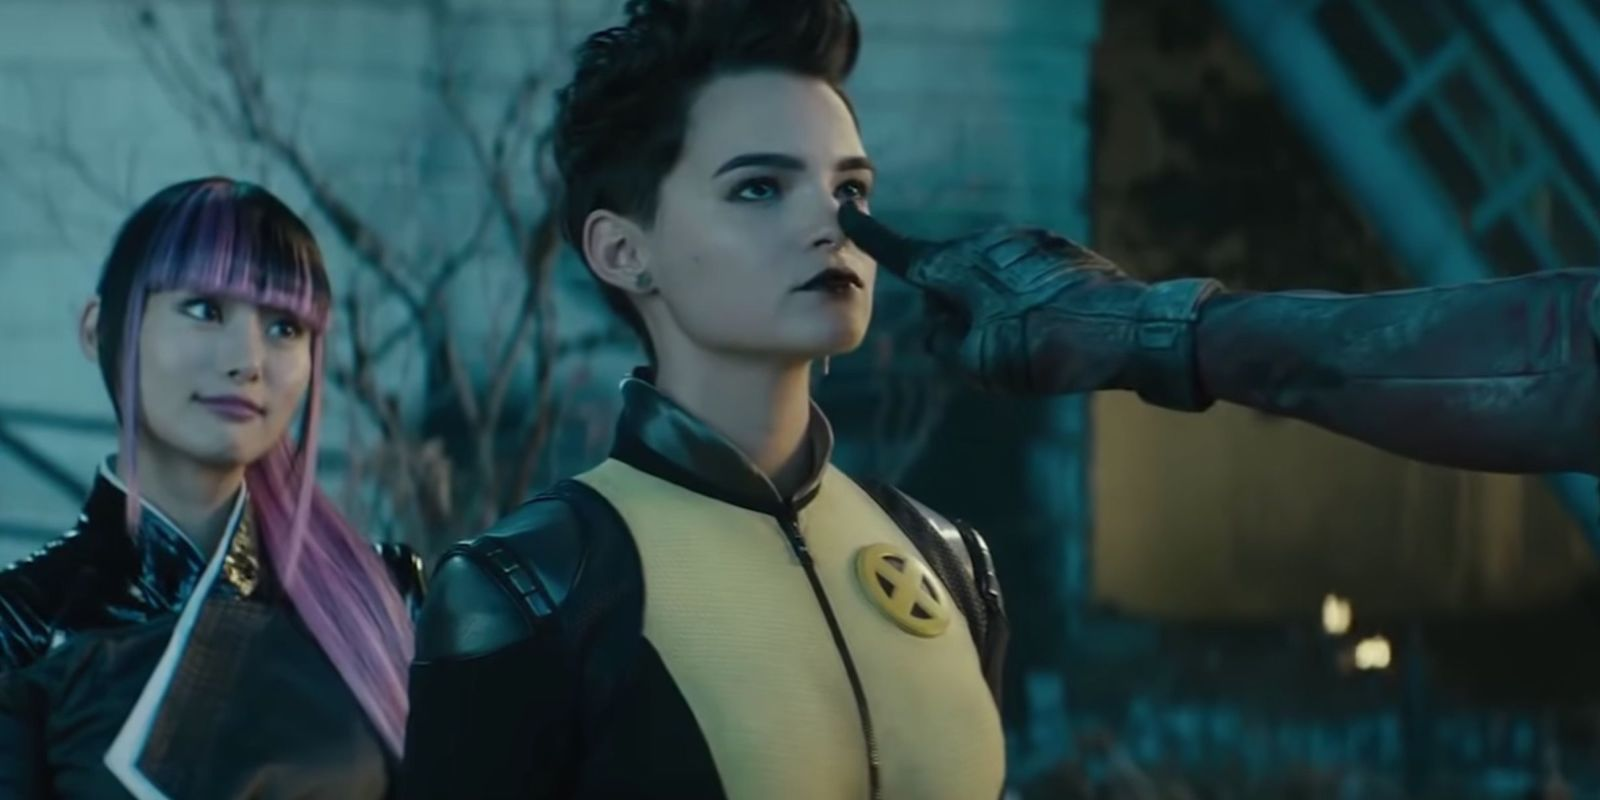 Asian hair streak trope in movies called out on Twitter following Deadpool 2 release